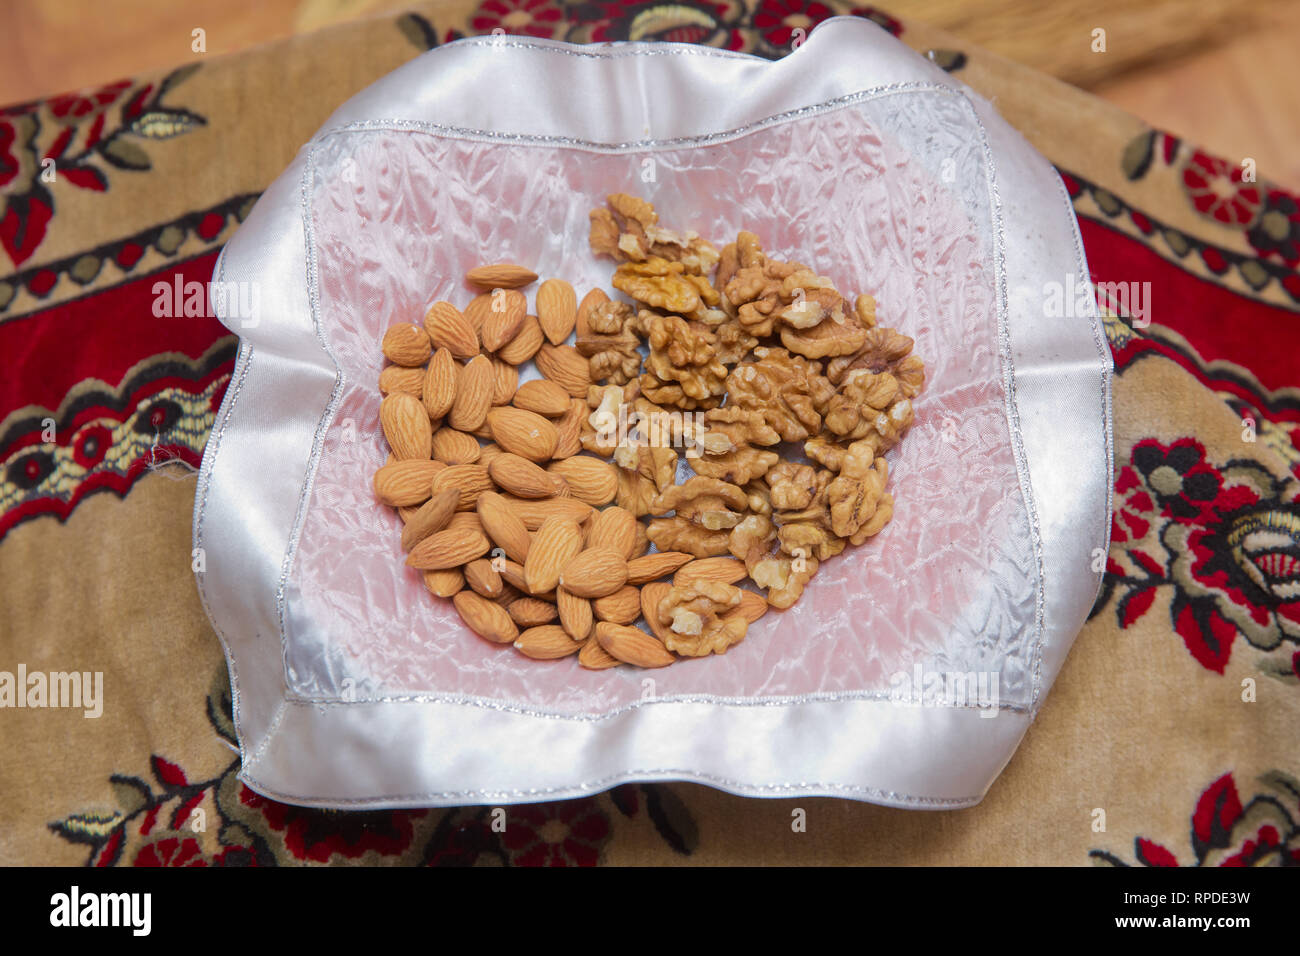 Cleaned almonds and walnuts inside the bowl . Assorted nuts on white, dry fruits, mix almond, walnuts - Stock Image